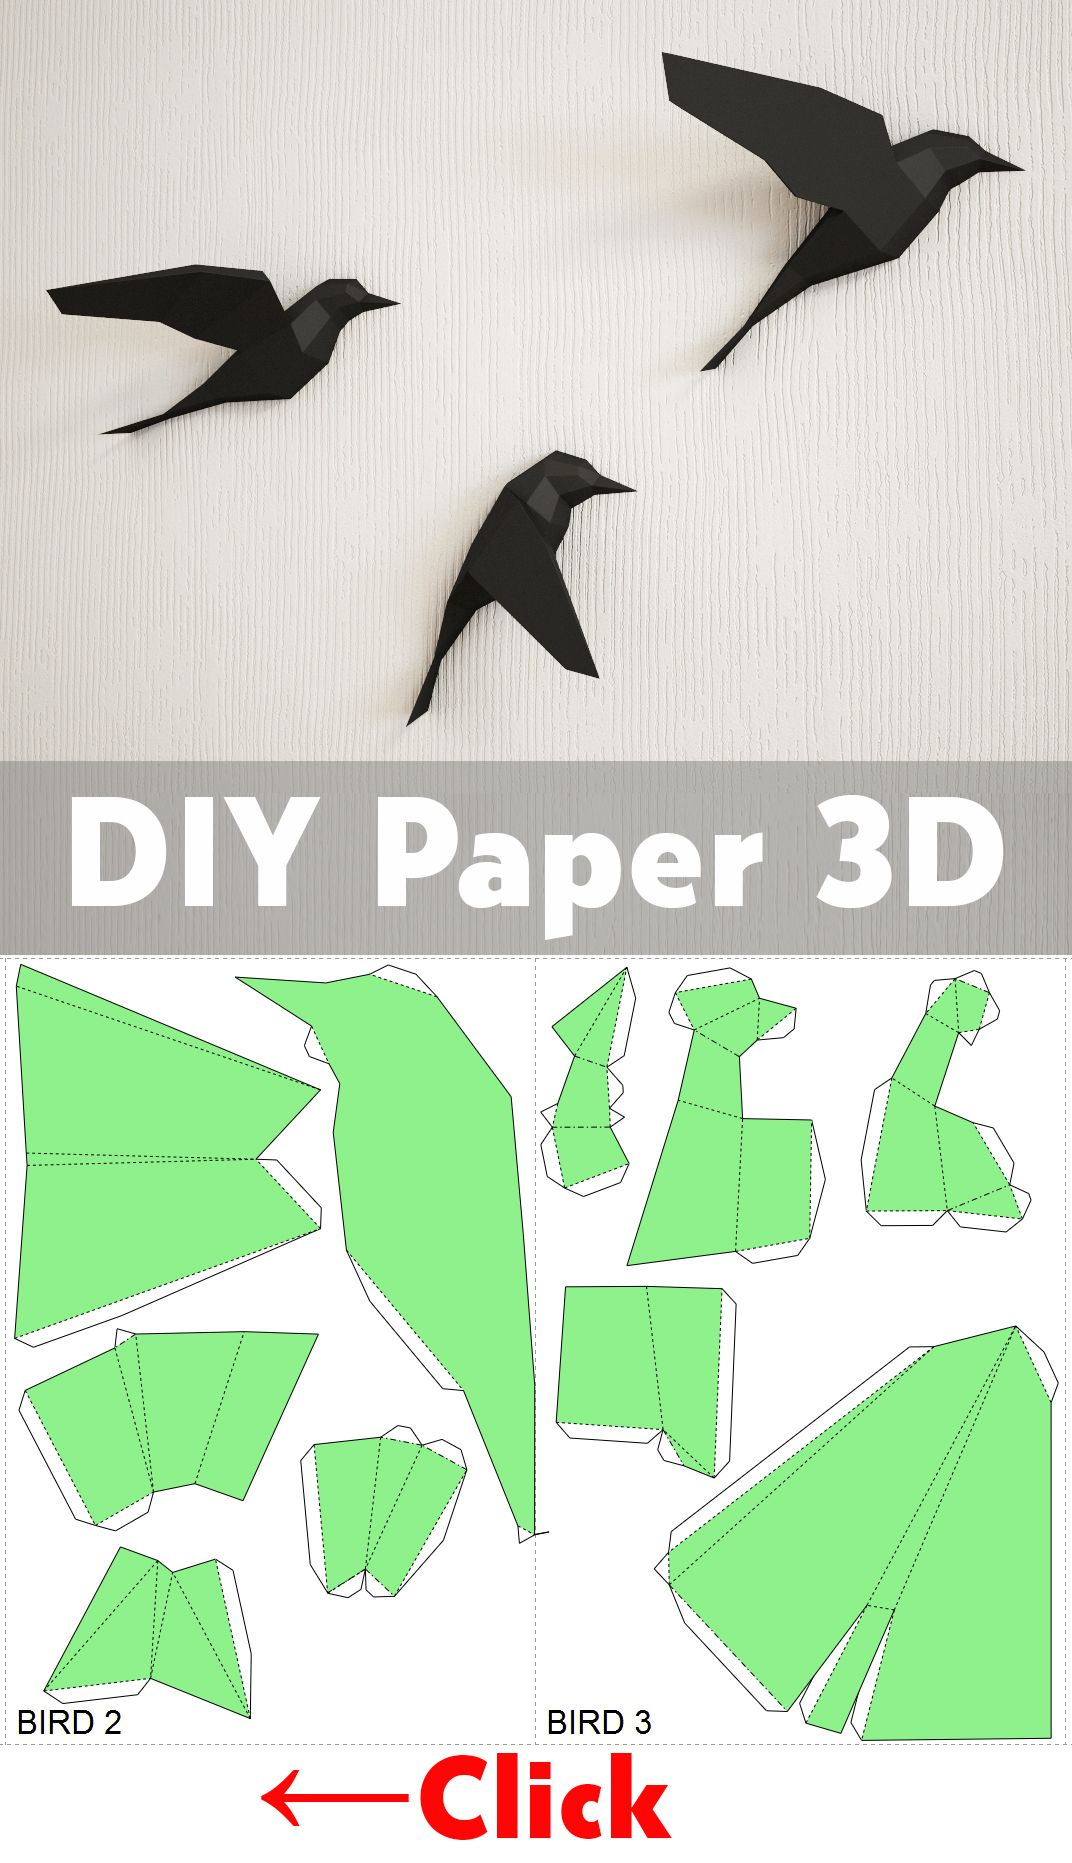 Diy paper birds on wall 3d papercraft easy paper model sculpture diy crafts paper projects papercraft ideas how to make 3d birds diy house solutioingenieria Images